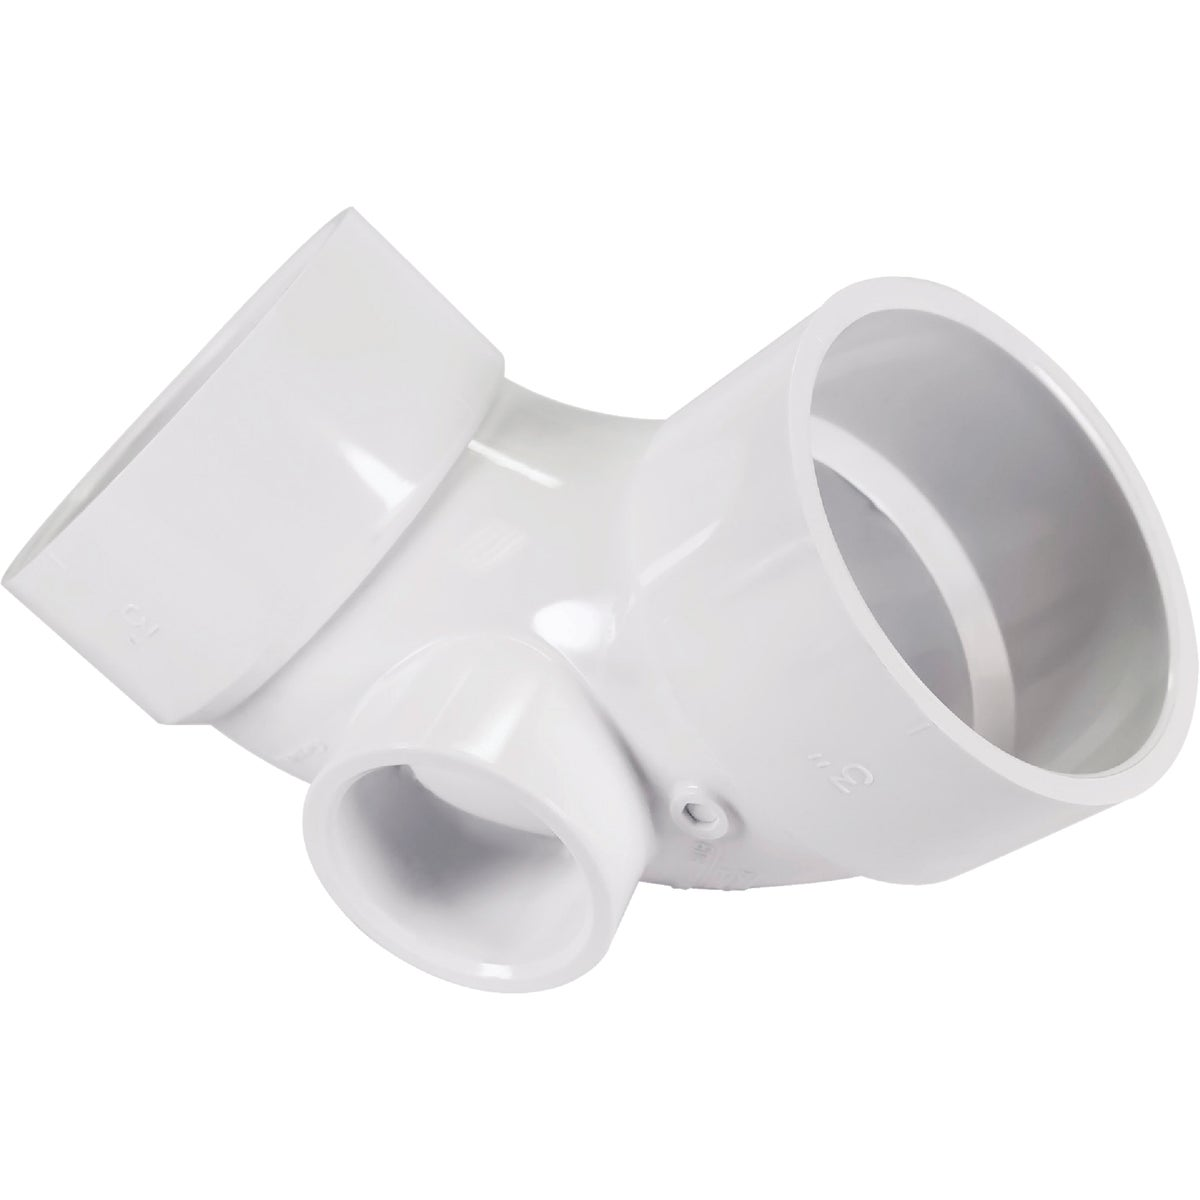 3X2/1-1/2 ELBOW W/SIDE - 73131 by Genova Inc  Pvc Dwv